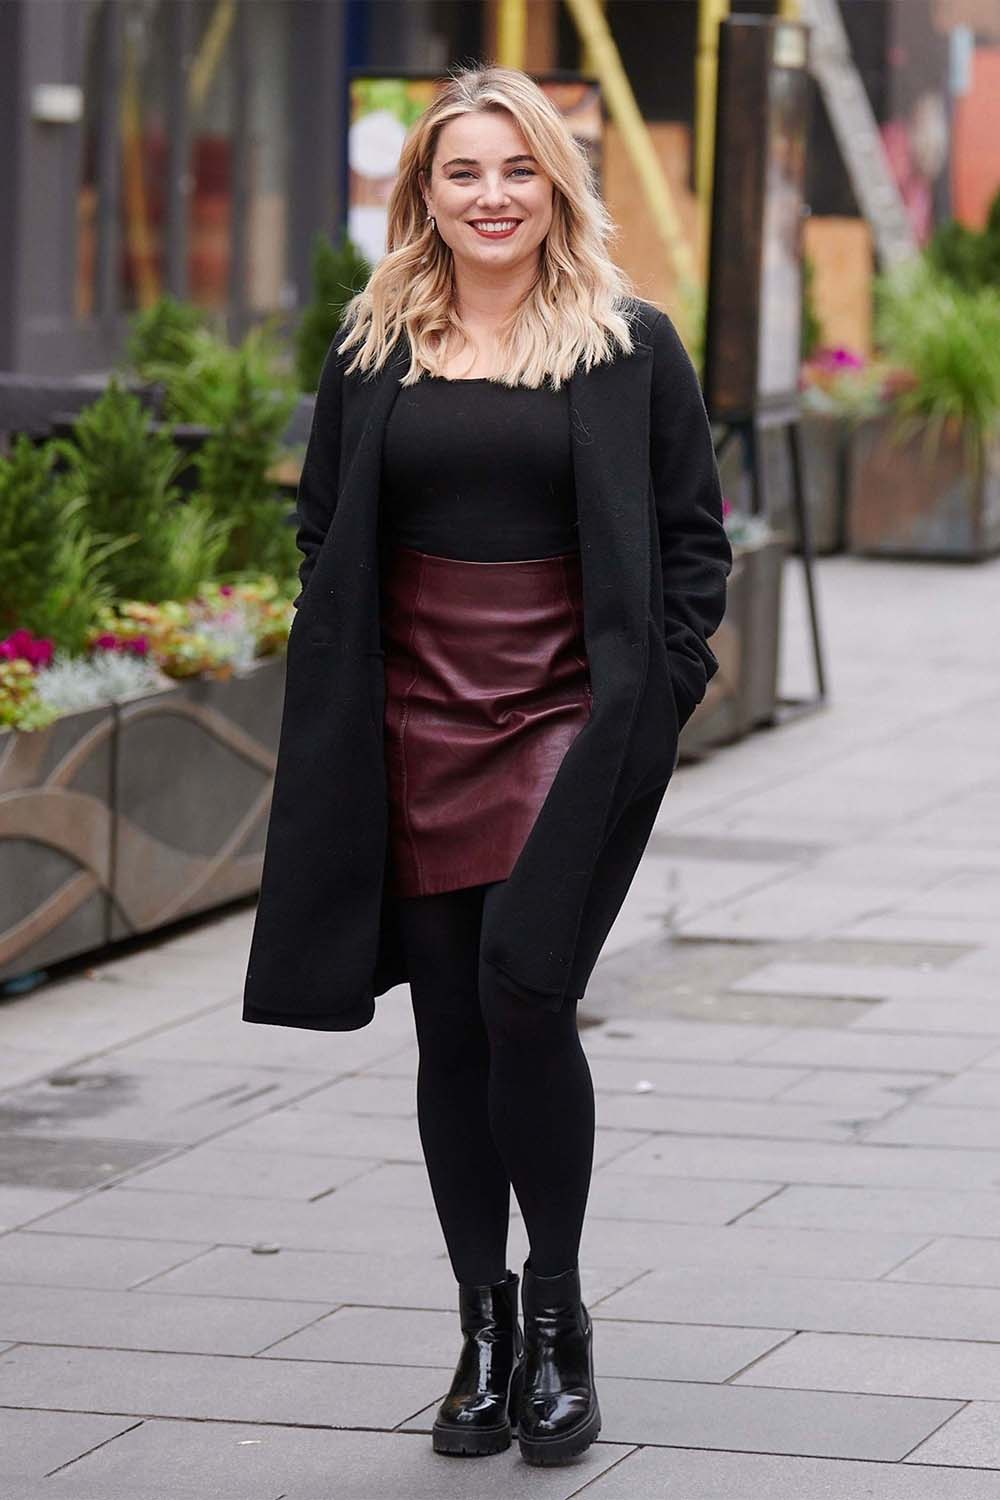 Sian Welby seen at Global Radio Studios in London's Leicester Square